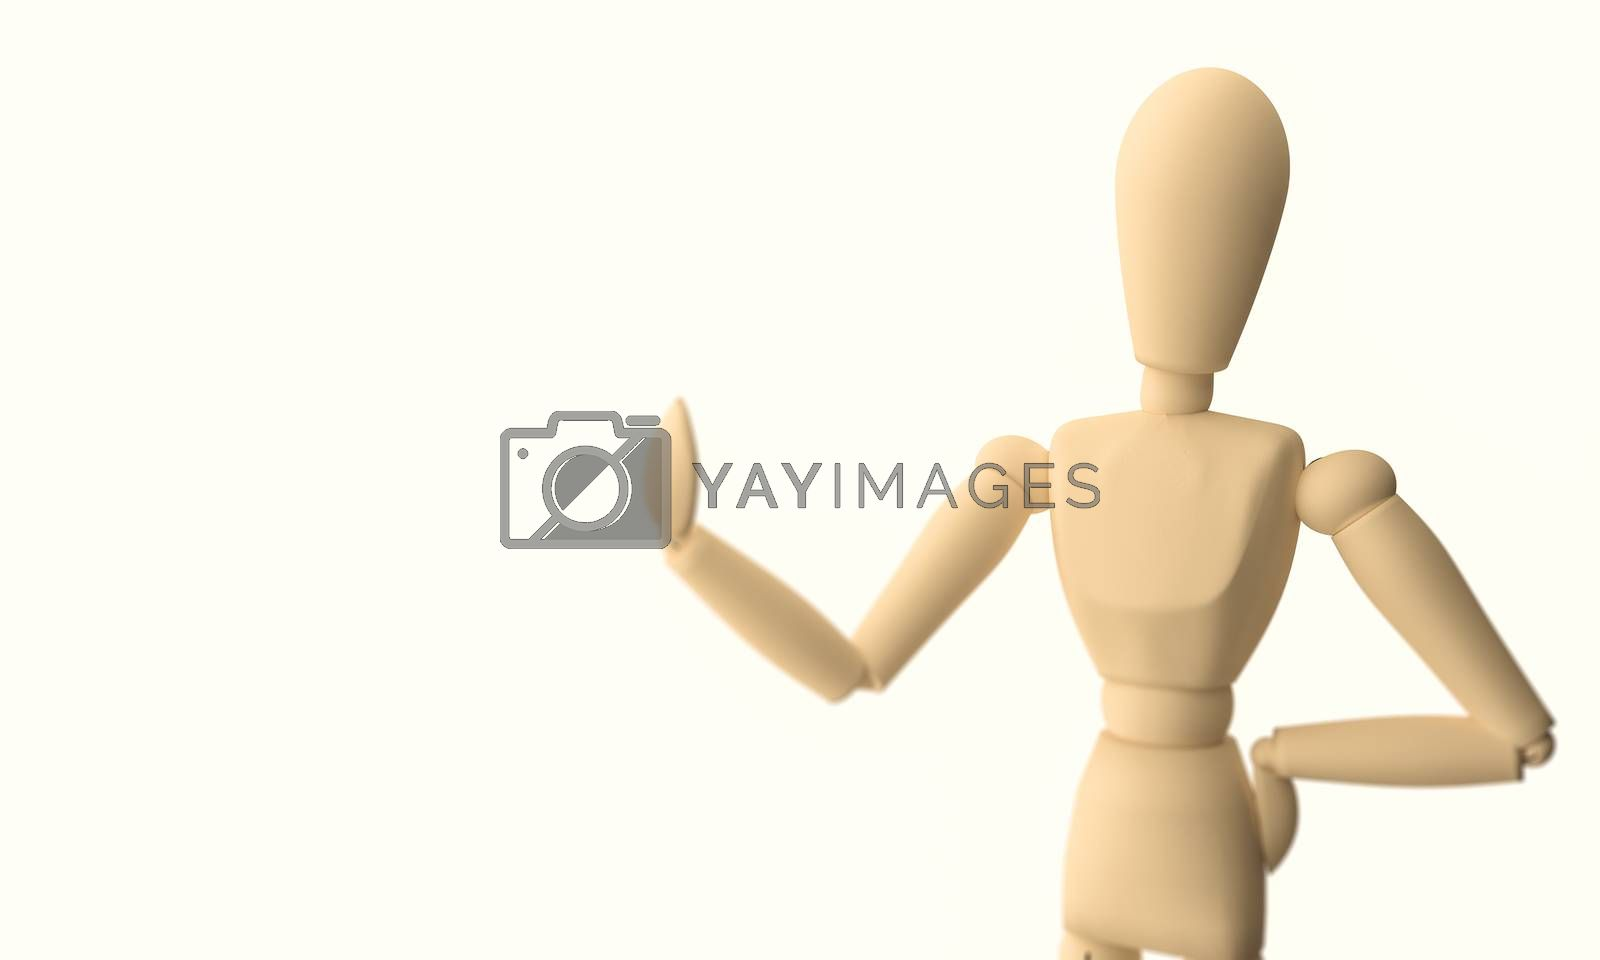 A CGI image of a wooden mannequin posing on a white background.